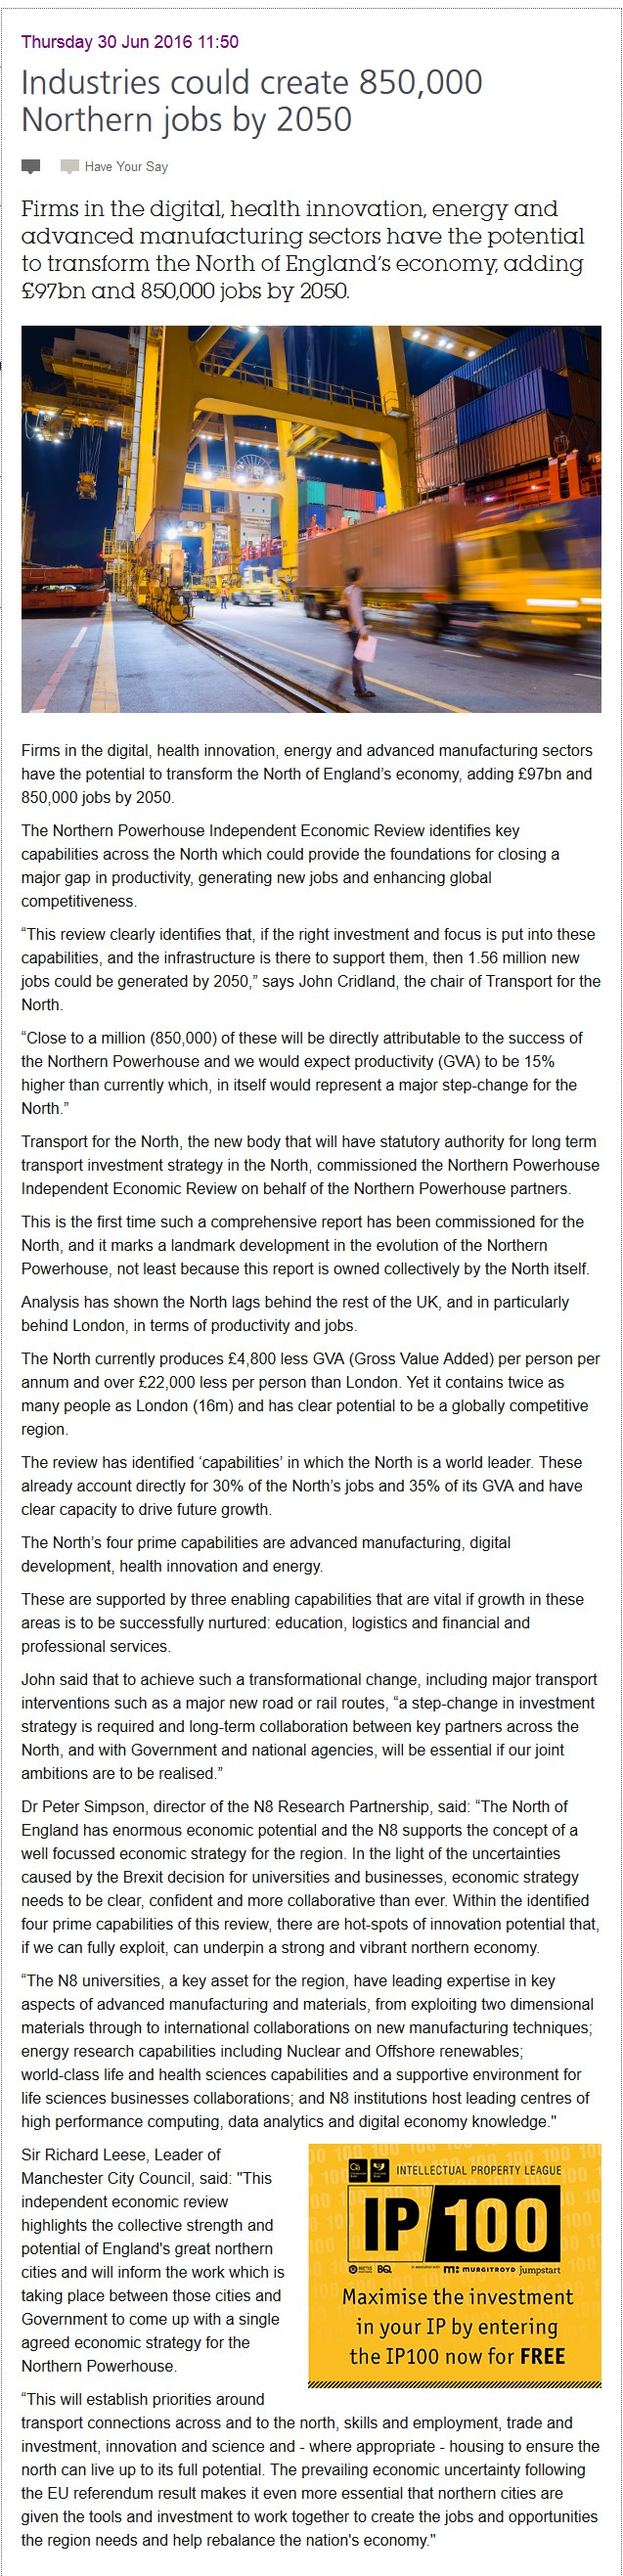 FireShot Pro Screen Capture #012 - 'Industries could create 850,0_' - www_bqlive_co_uk_2016_06_30_industries-could-create-850000-norther